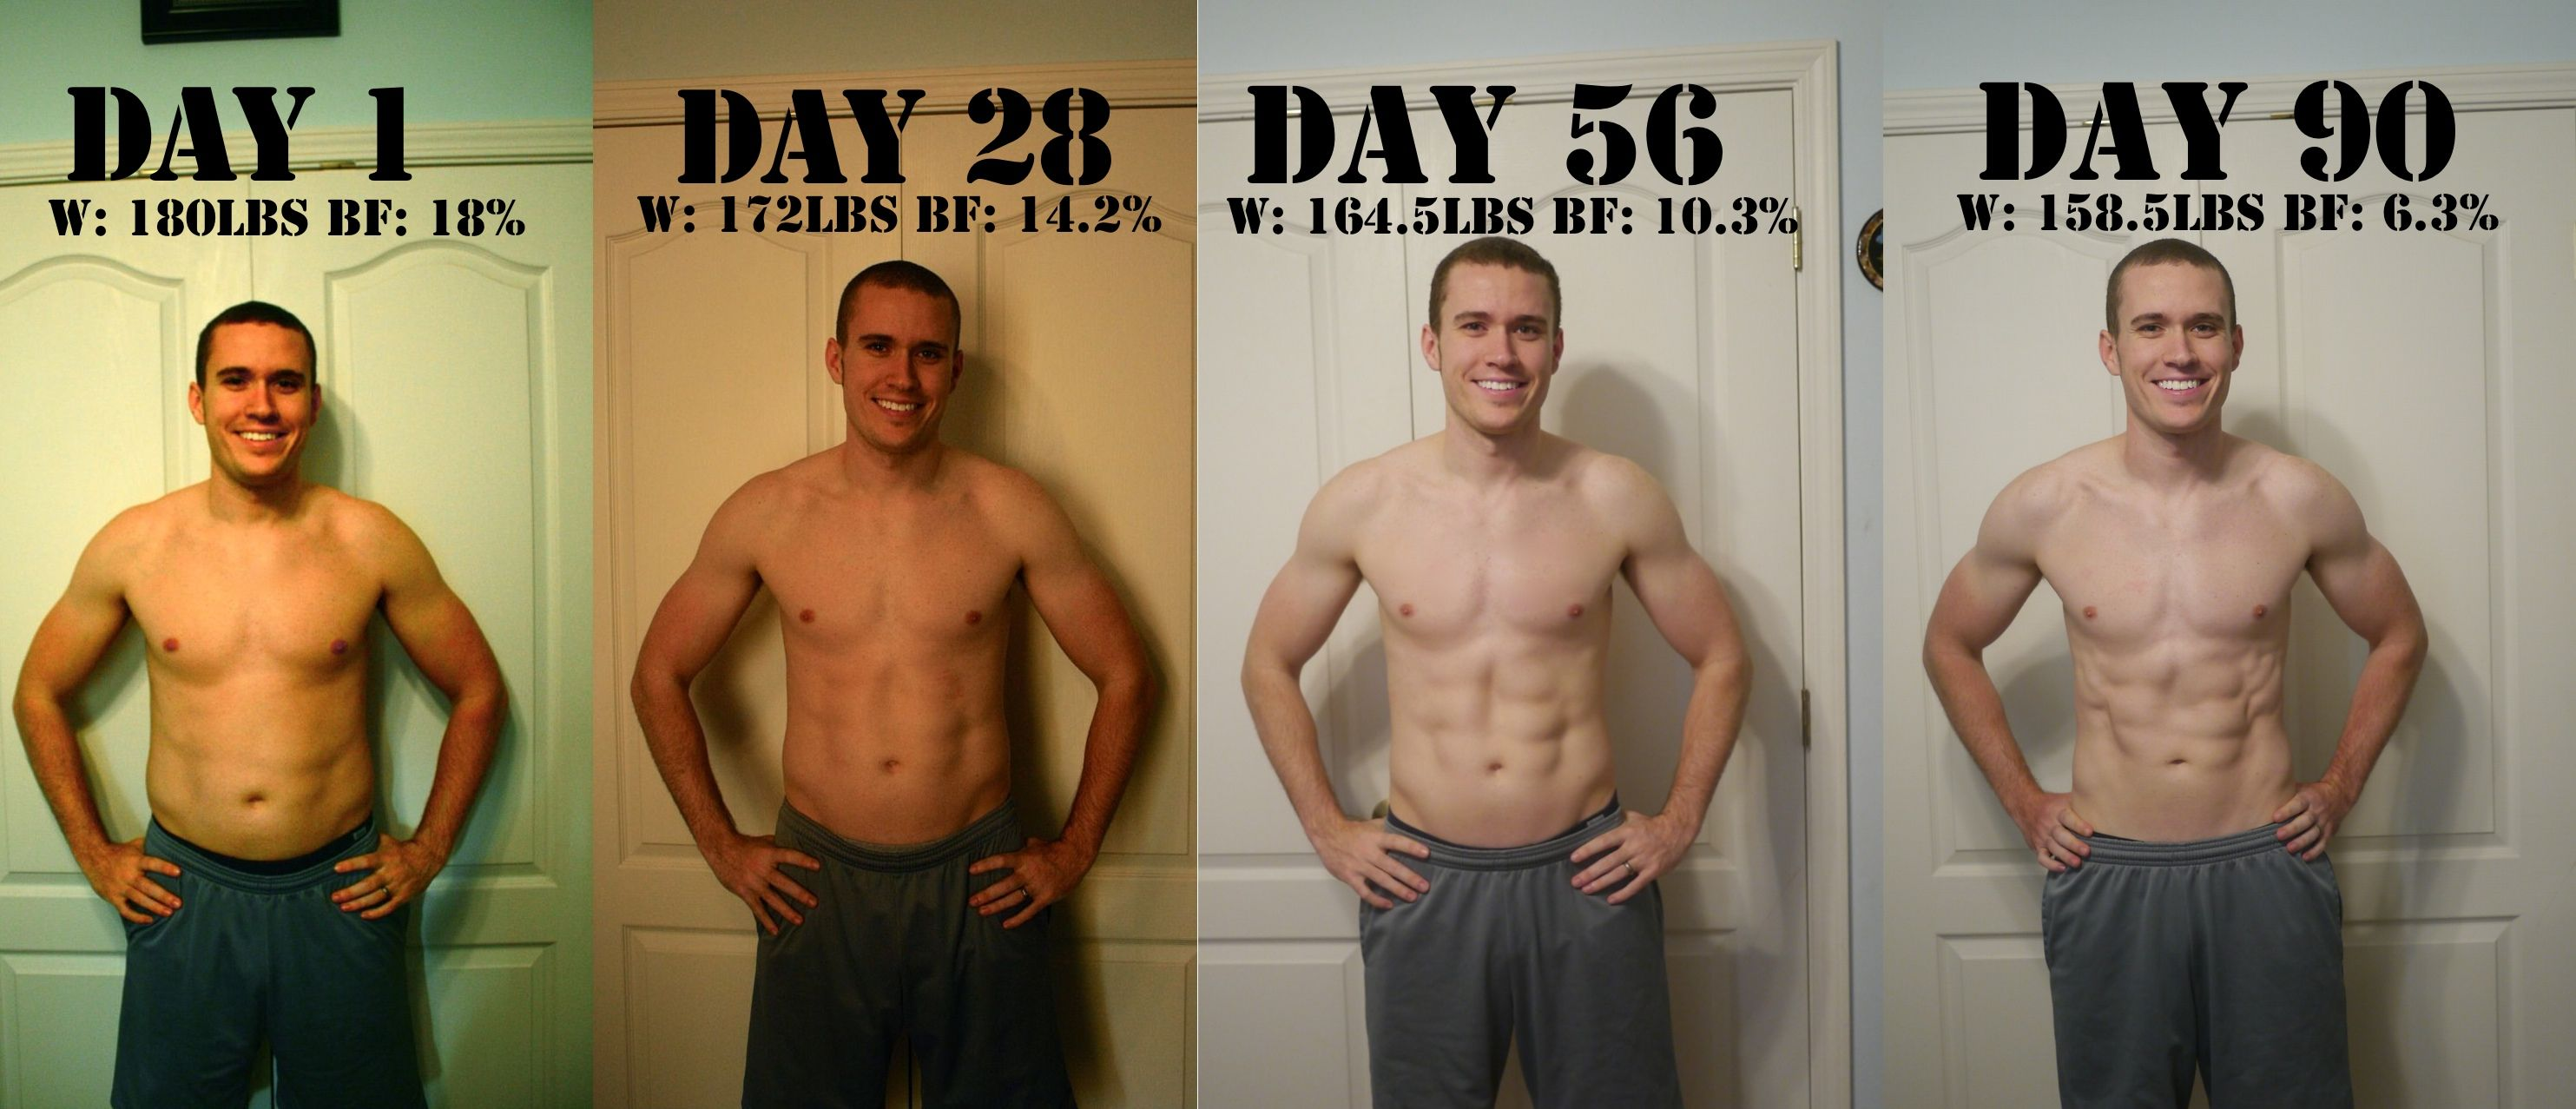 He Lost 12 Body Fat With P90x2